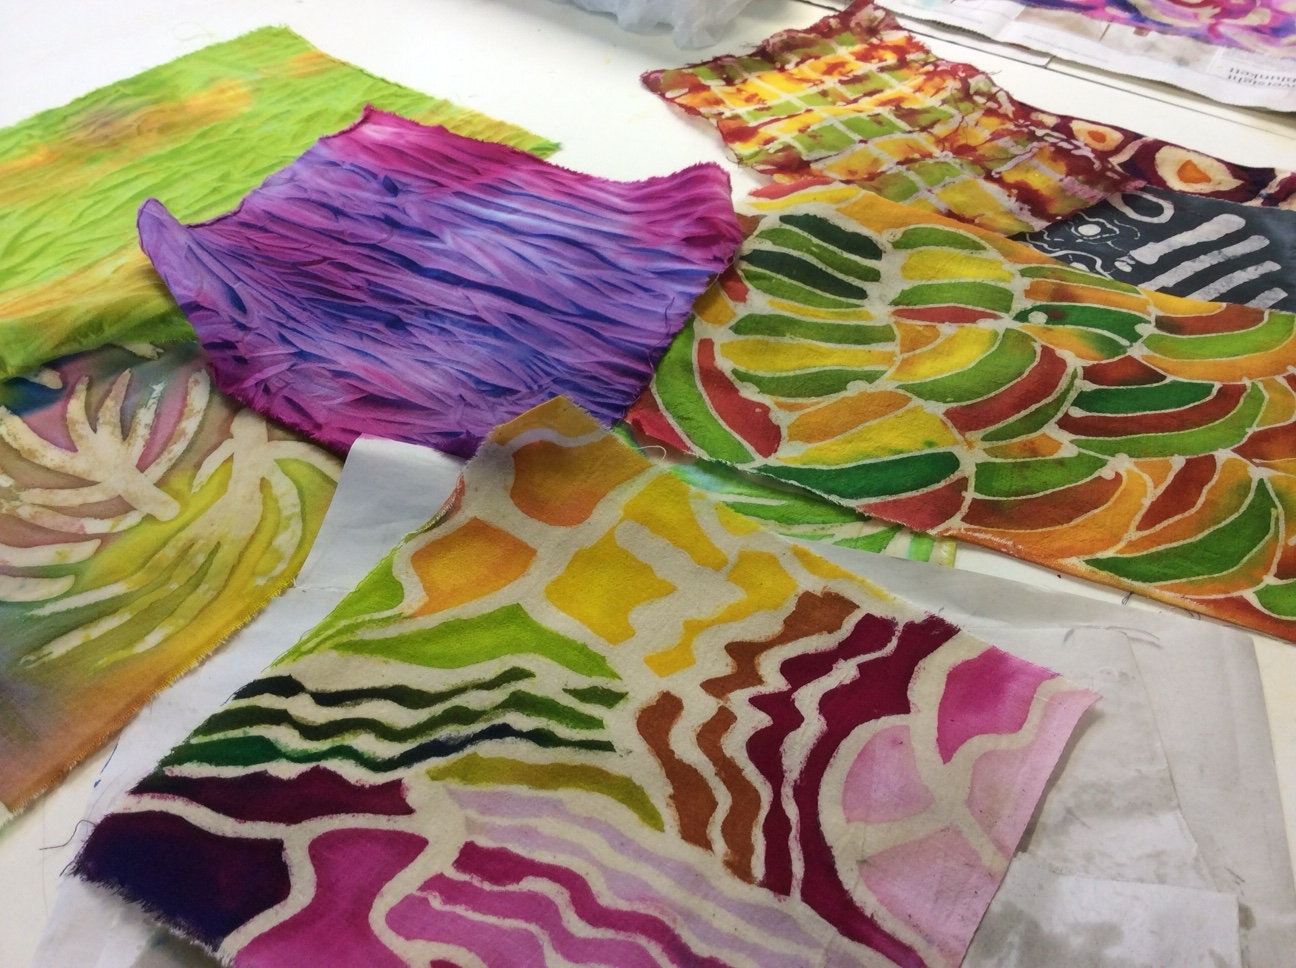 Batik Textiles & Mixed Media course with Gill Collinson at Cambridge Art Makers